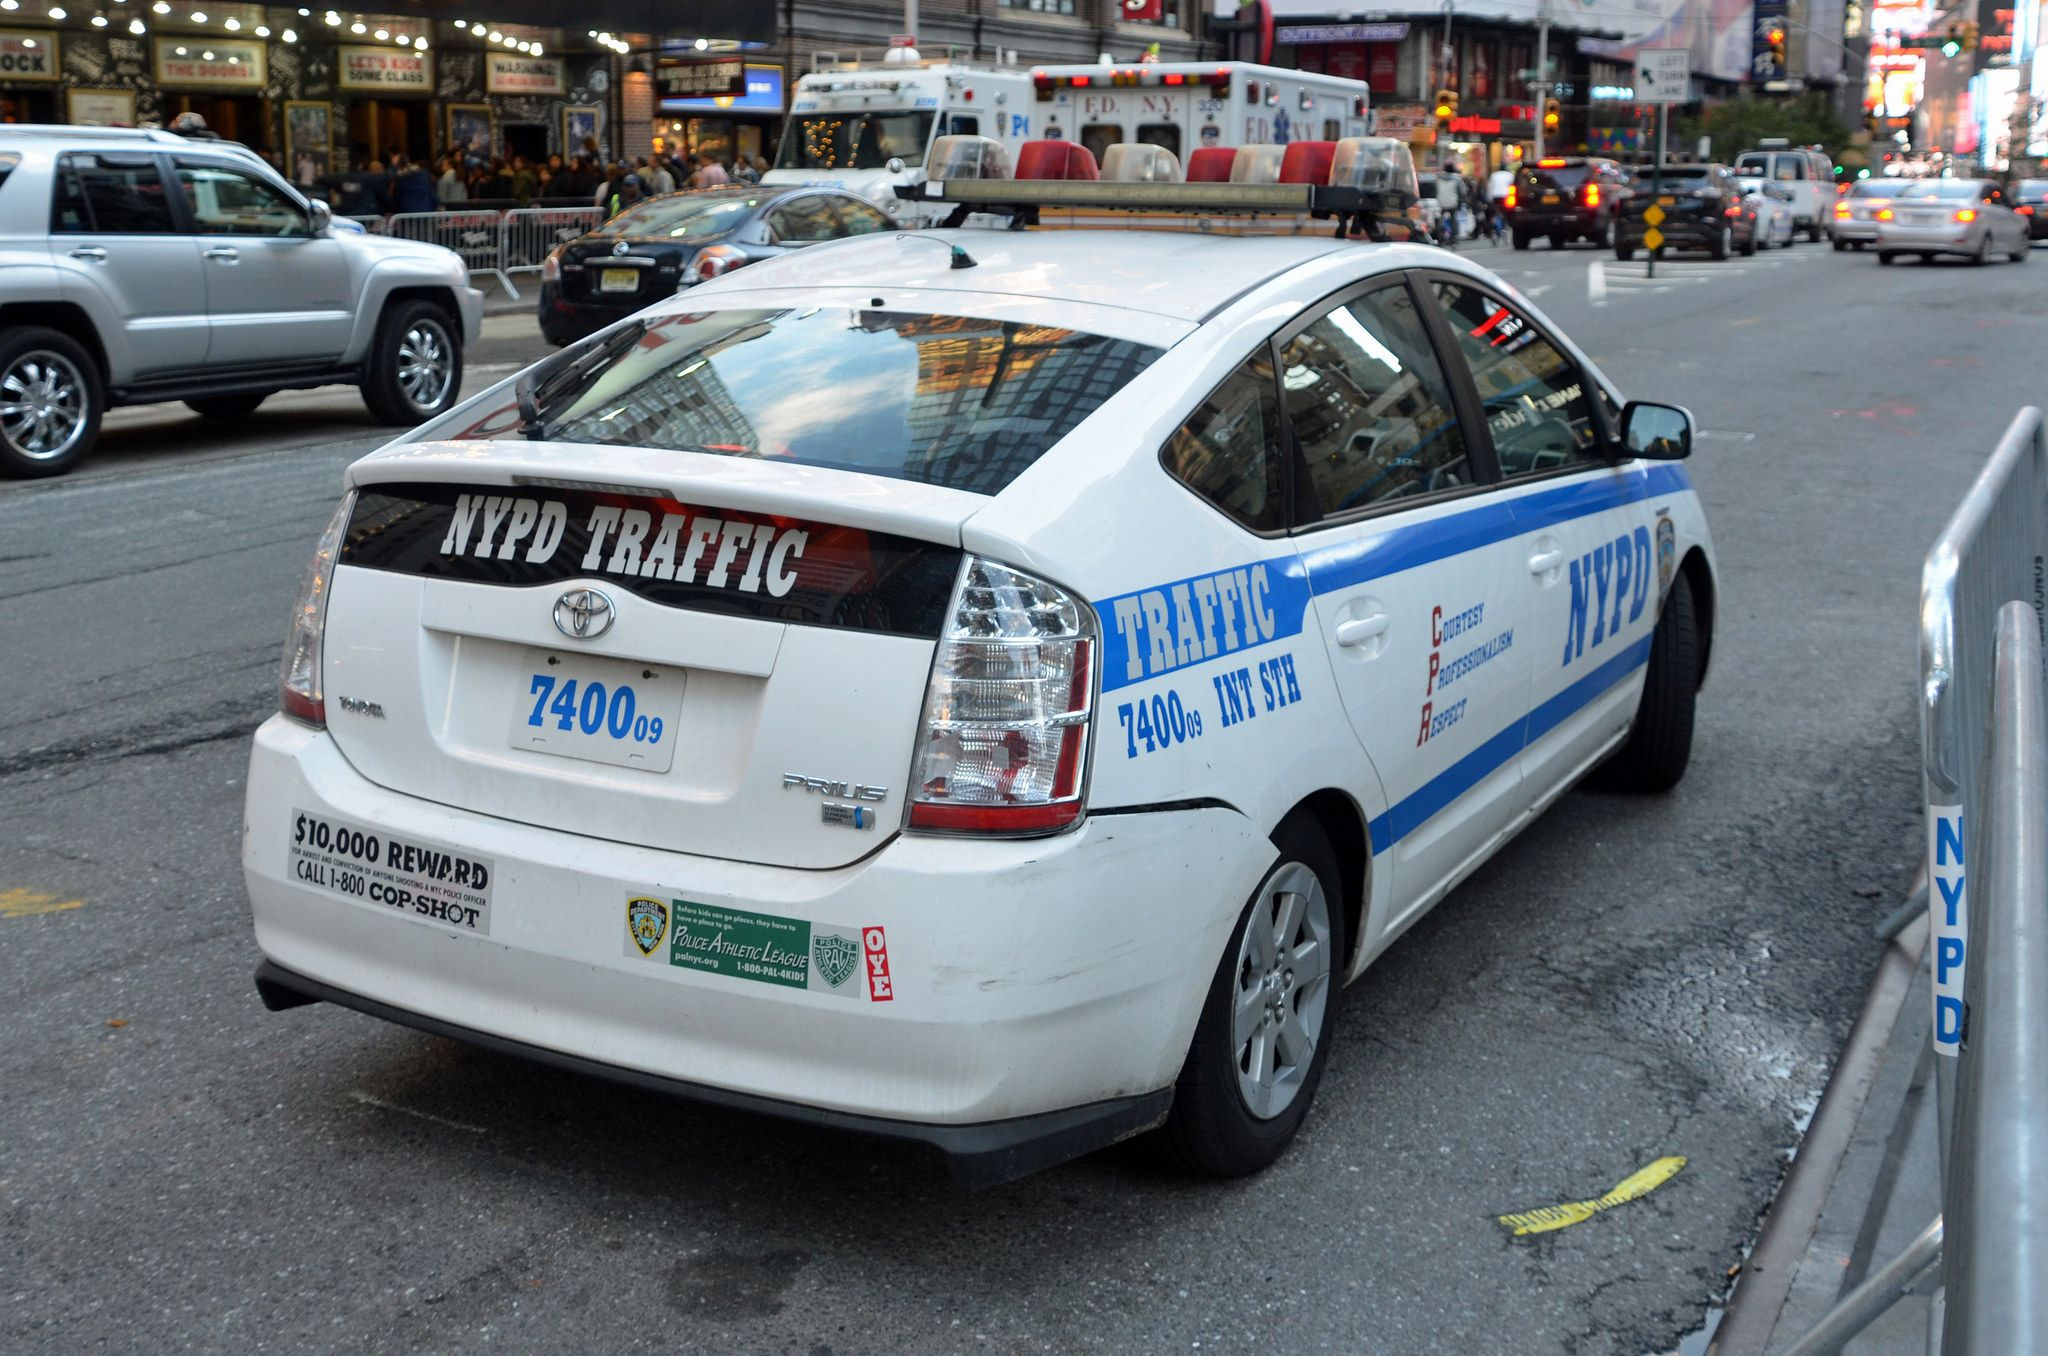 Nypd Traffic Int Sth 7400 Toyota Prius Police Vehicles Emergency Cars